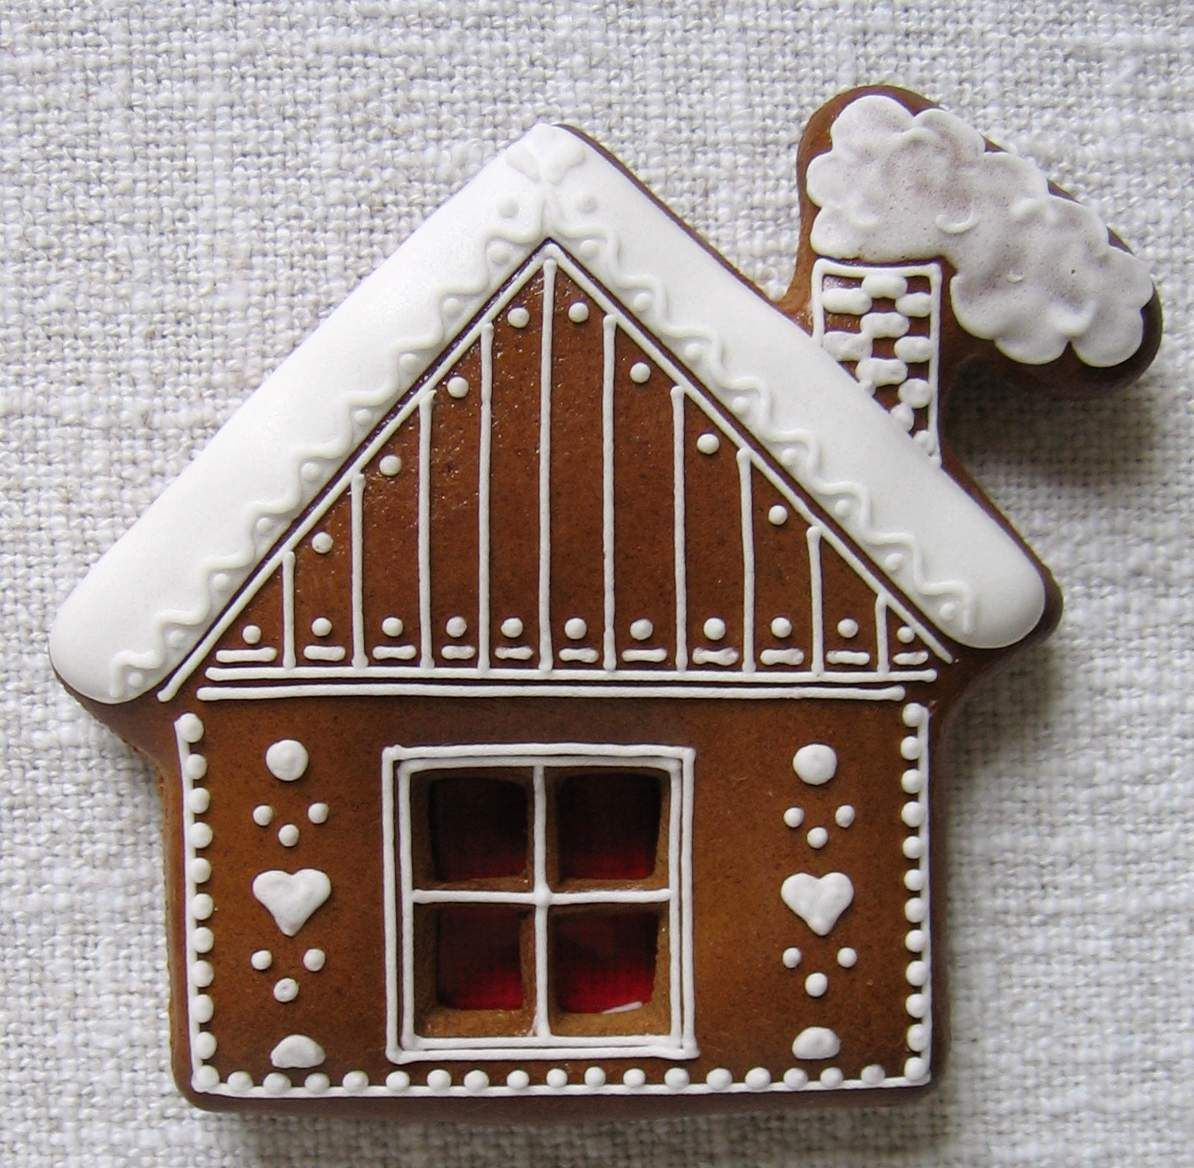 Jls - OPT: RED base, white decor; red decor on either Gbread or reg cookie